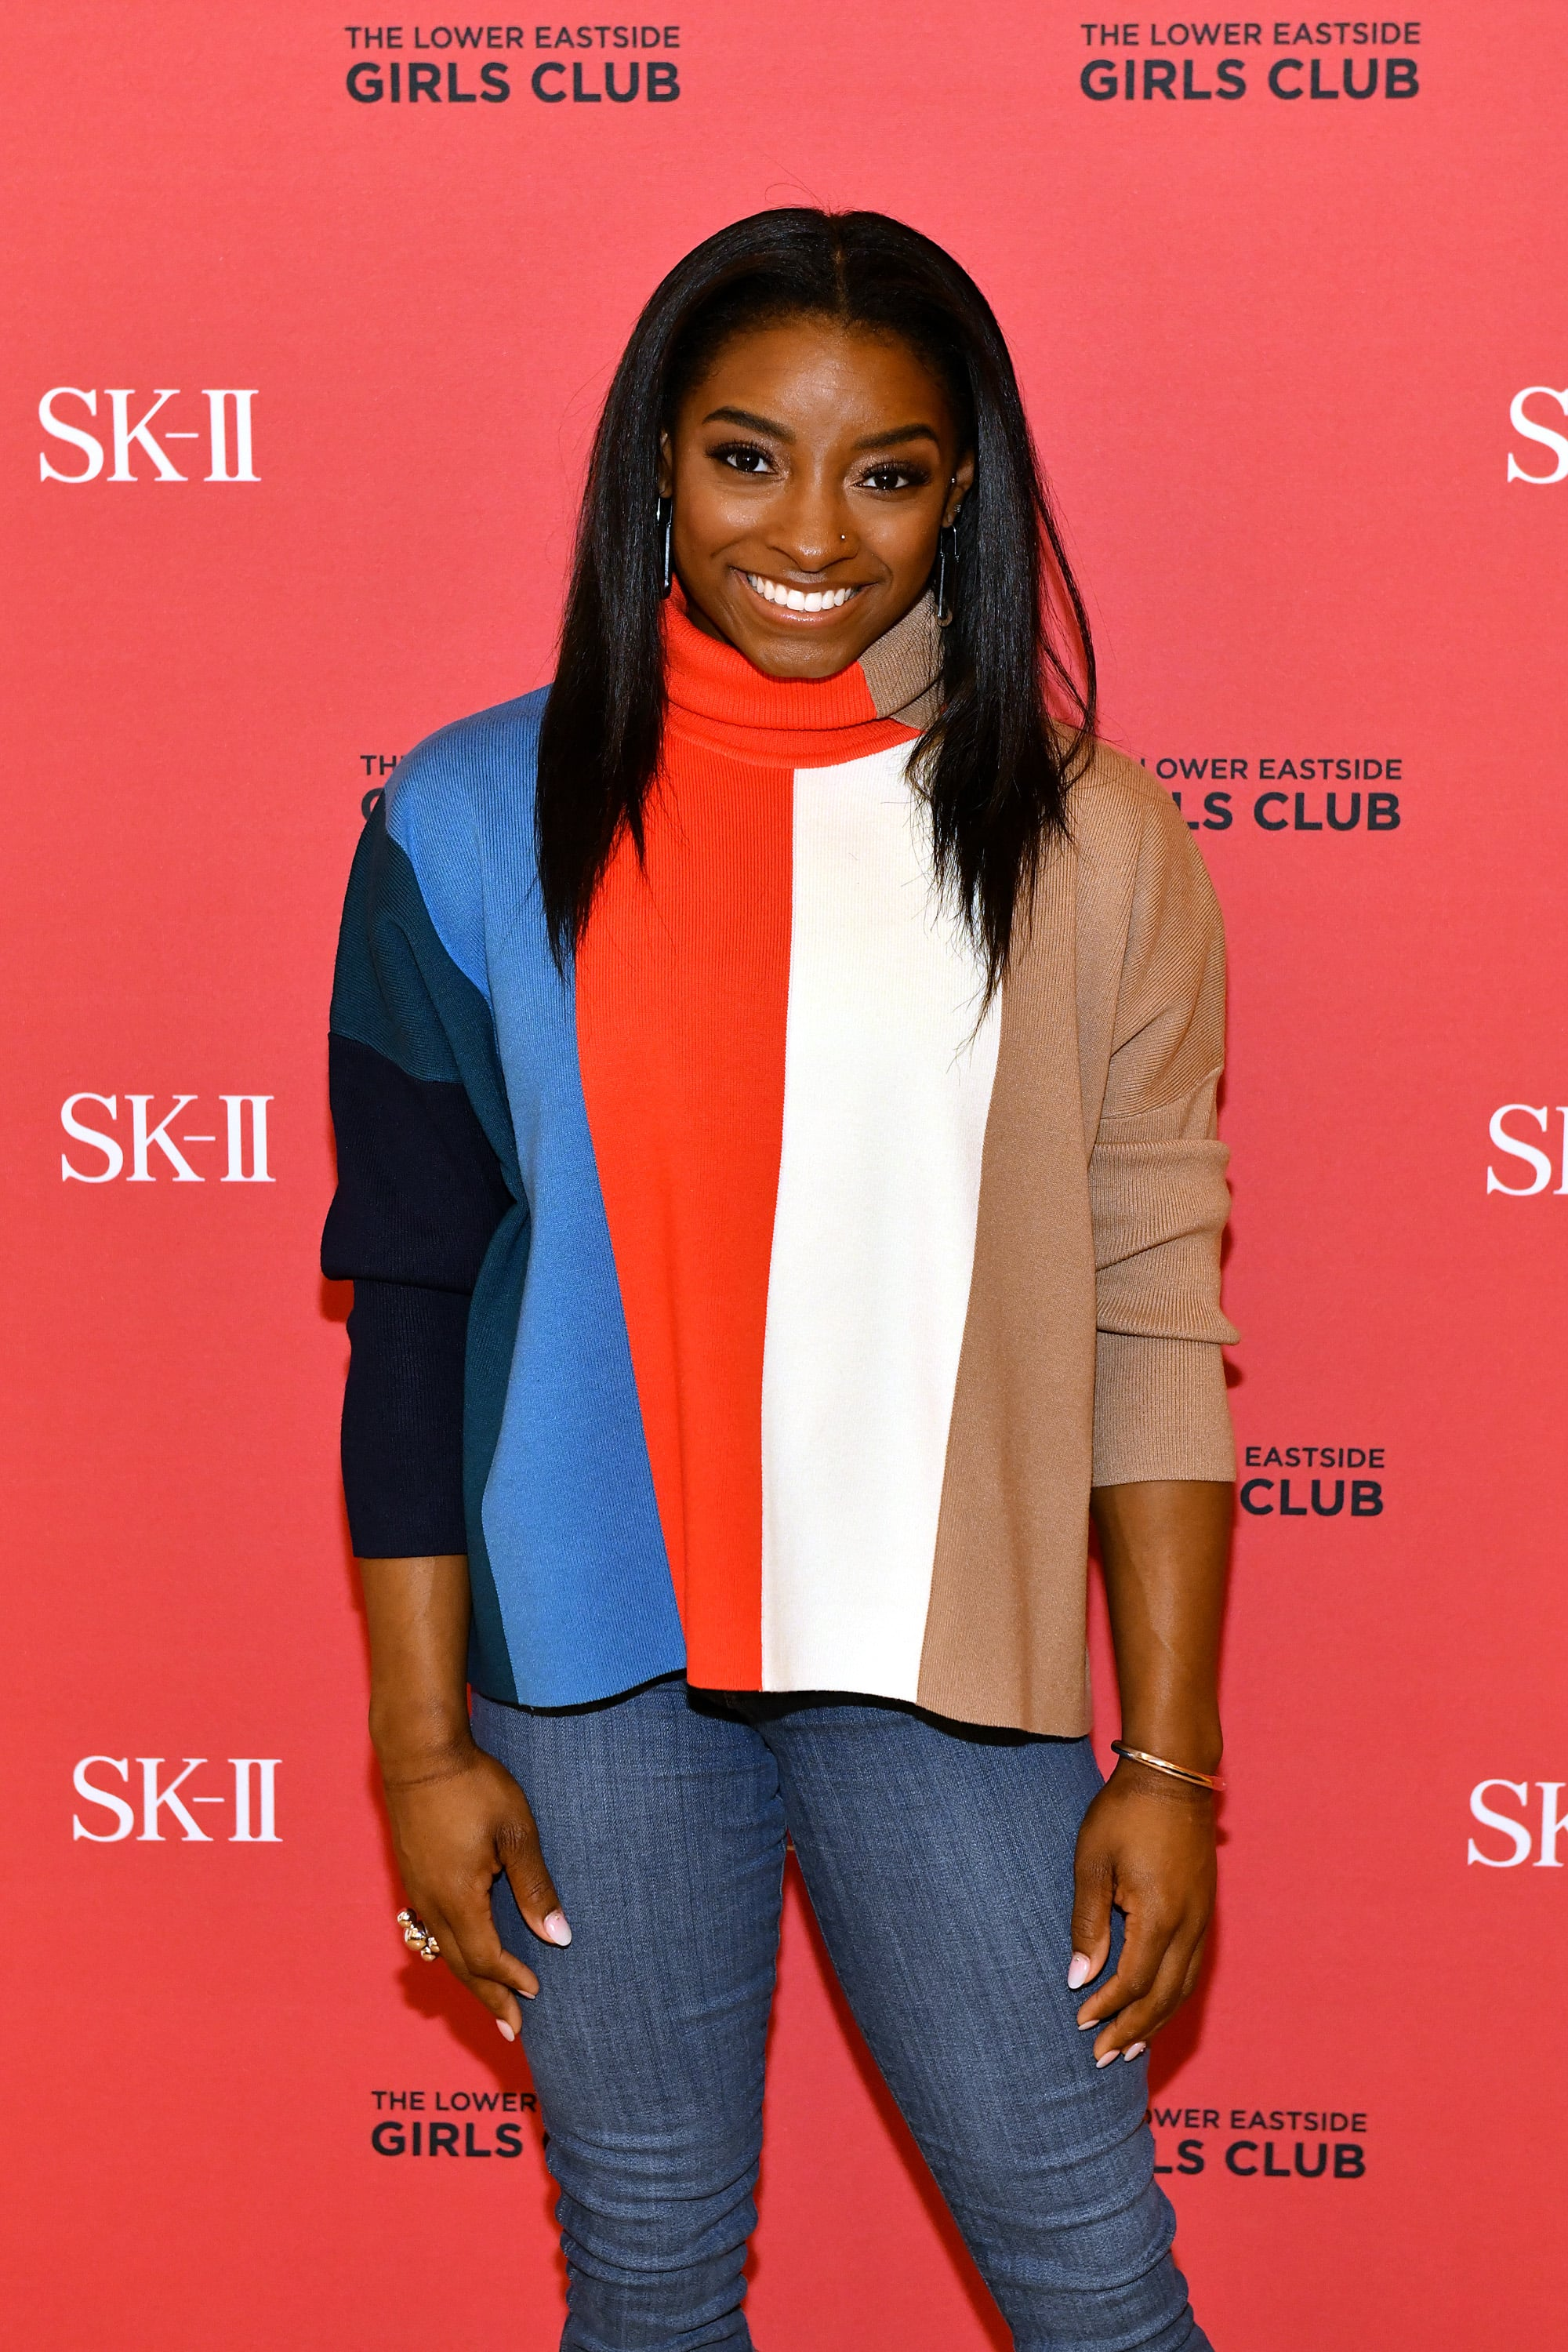 NEW YORK, NEW YORK - MARCH 03:  Simone Biles visits the Lower Eastside Girls Club with SK-II at Lower East Side Girls Club on March 03, 2020 in New York City. (Photo by Craig Barritt/Getty Images for SK-II)